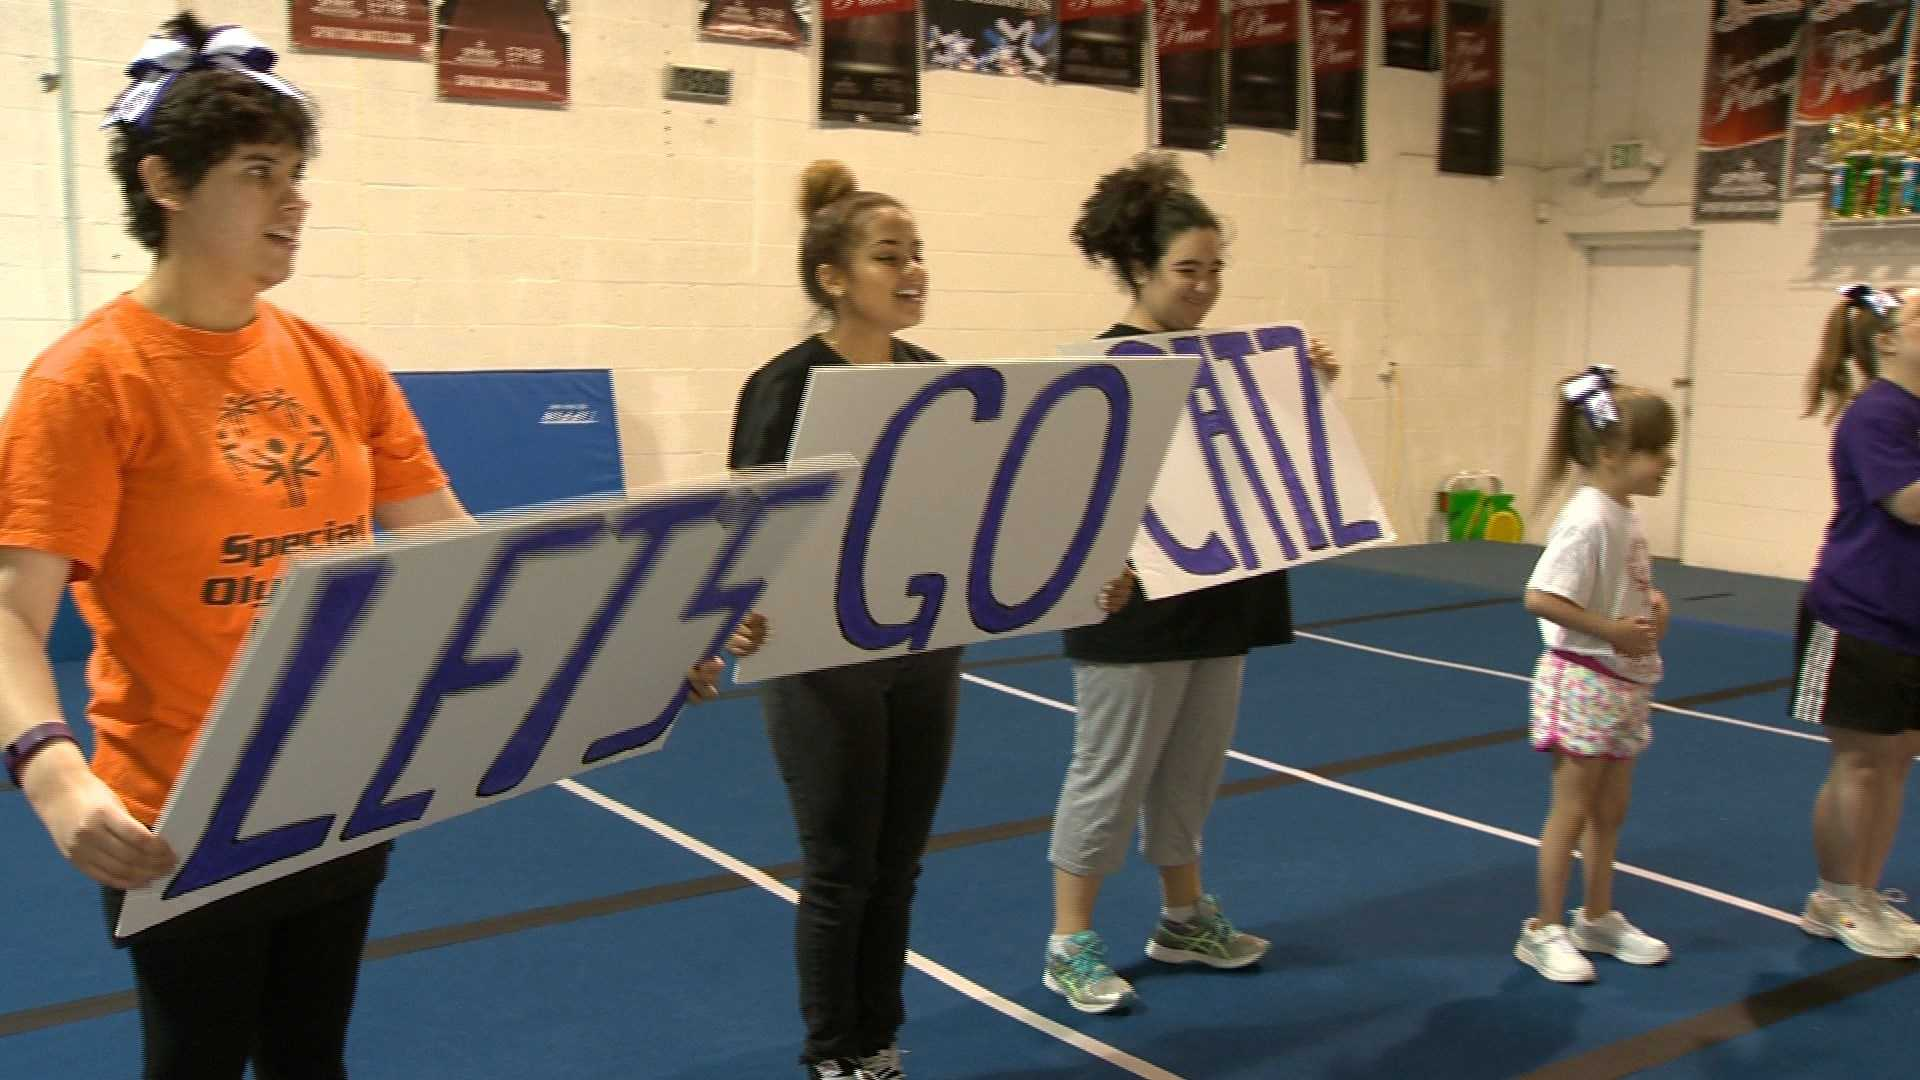 The Maryland Special Olympics Summer Games will include cheerleading this year at Towson University.